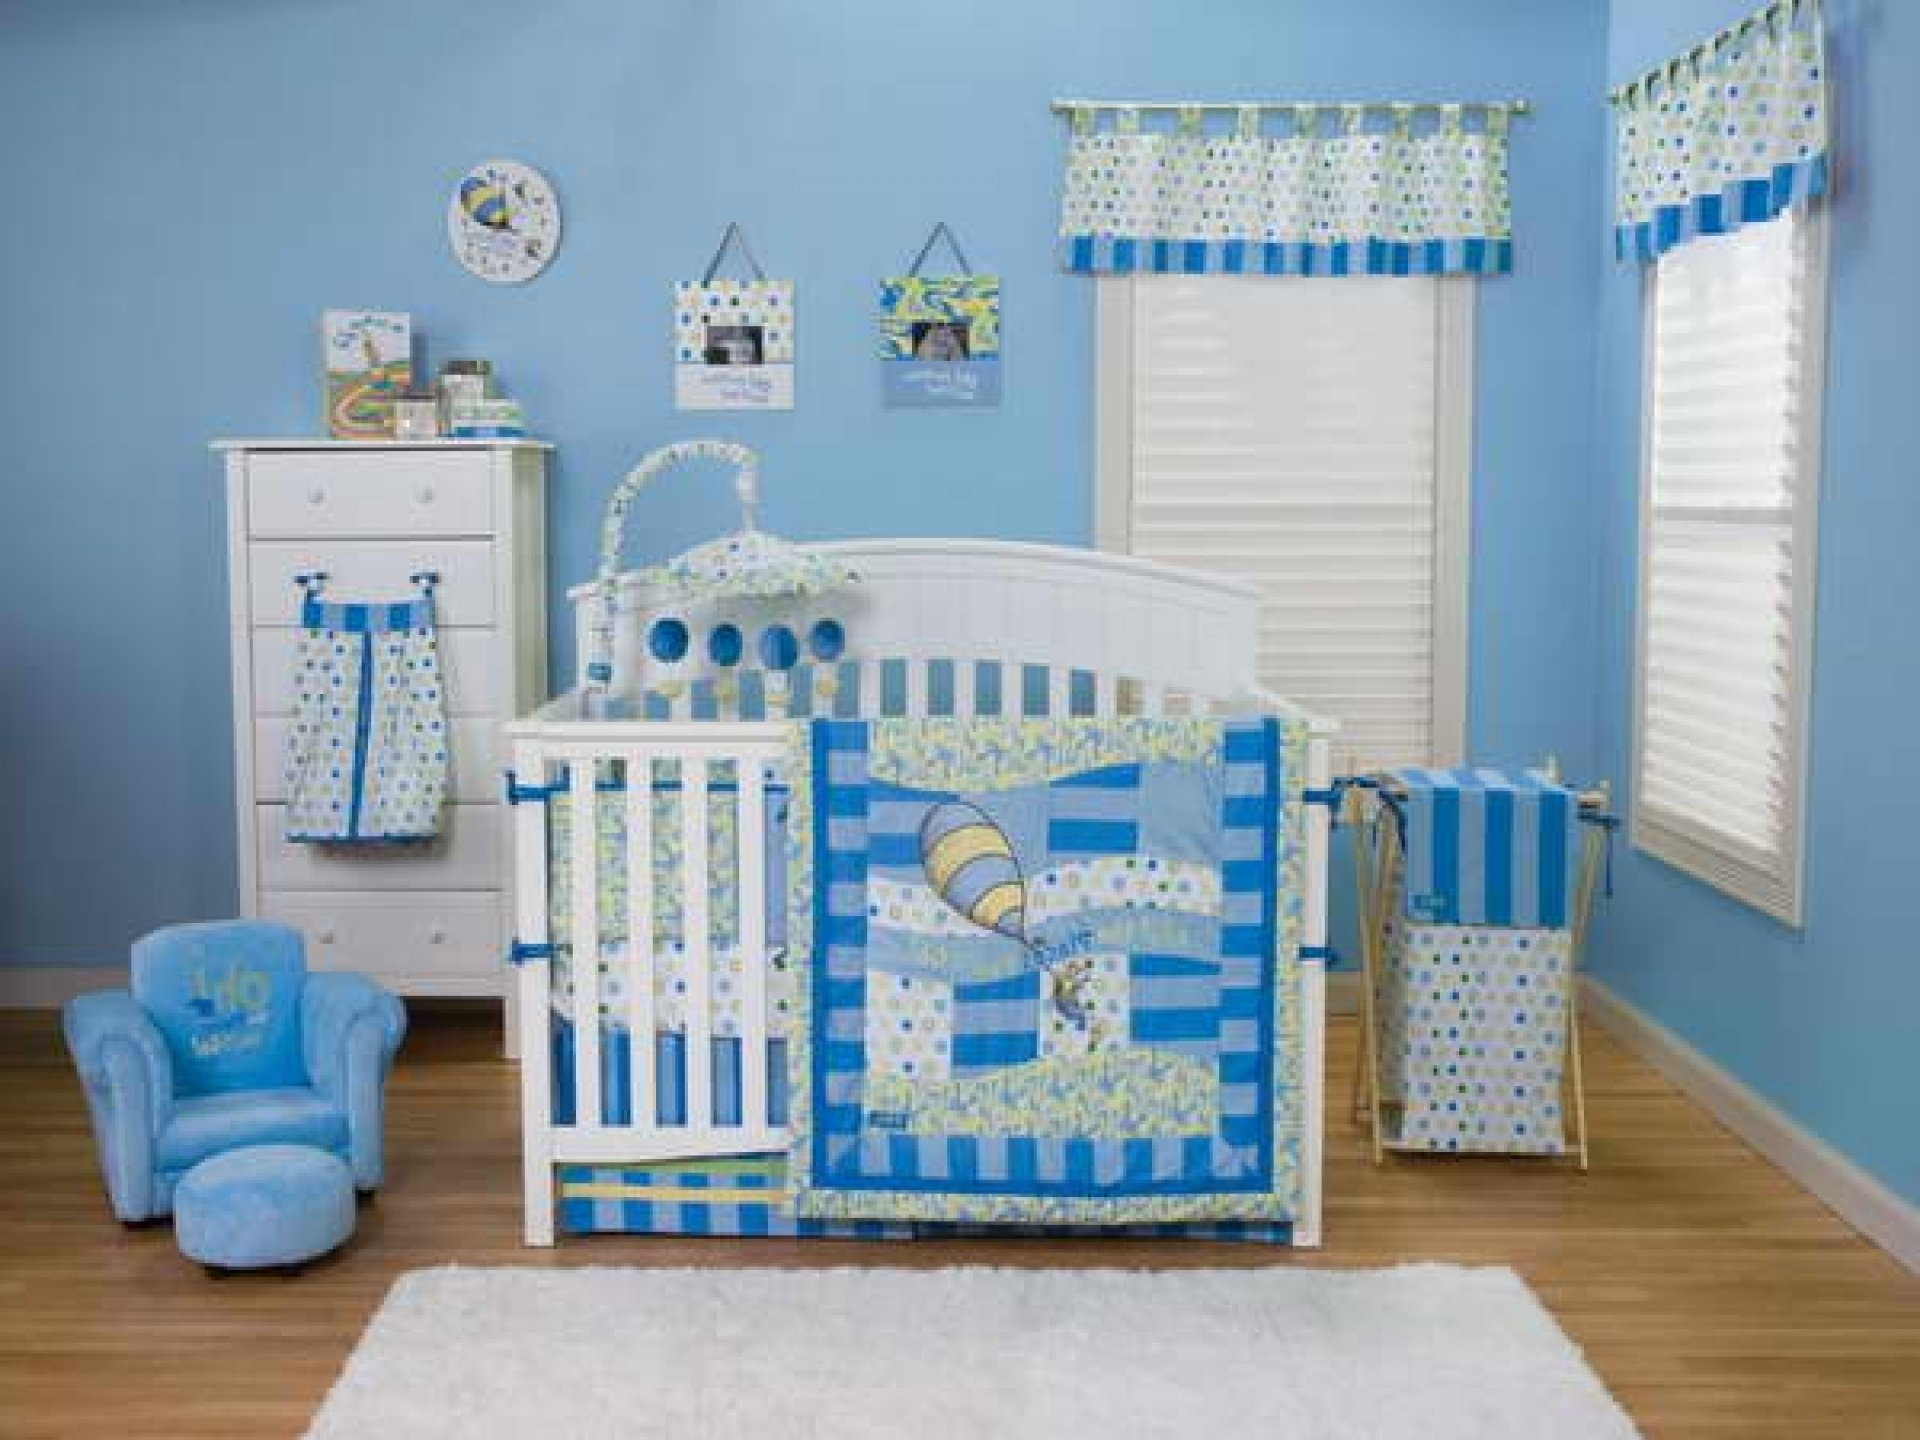 10 Unique Baby Boy Room Decor Ideas boy boys room decor ideas photos boy baby boy rooms decor as wells 2020